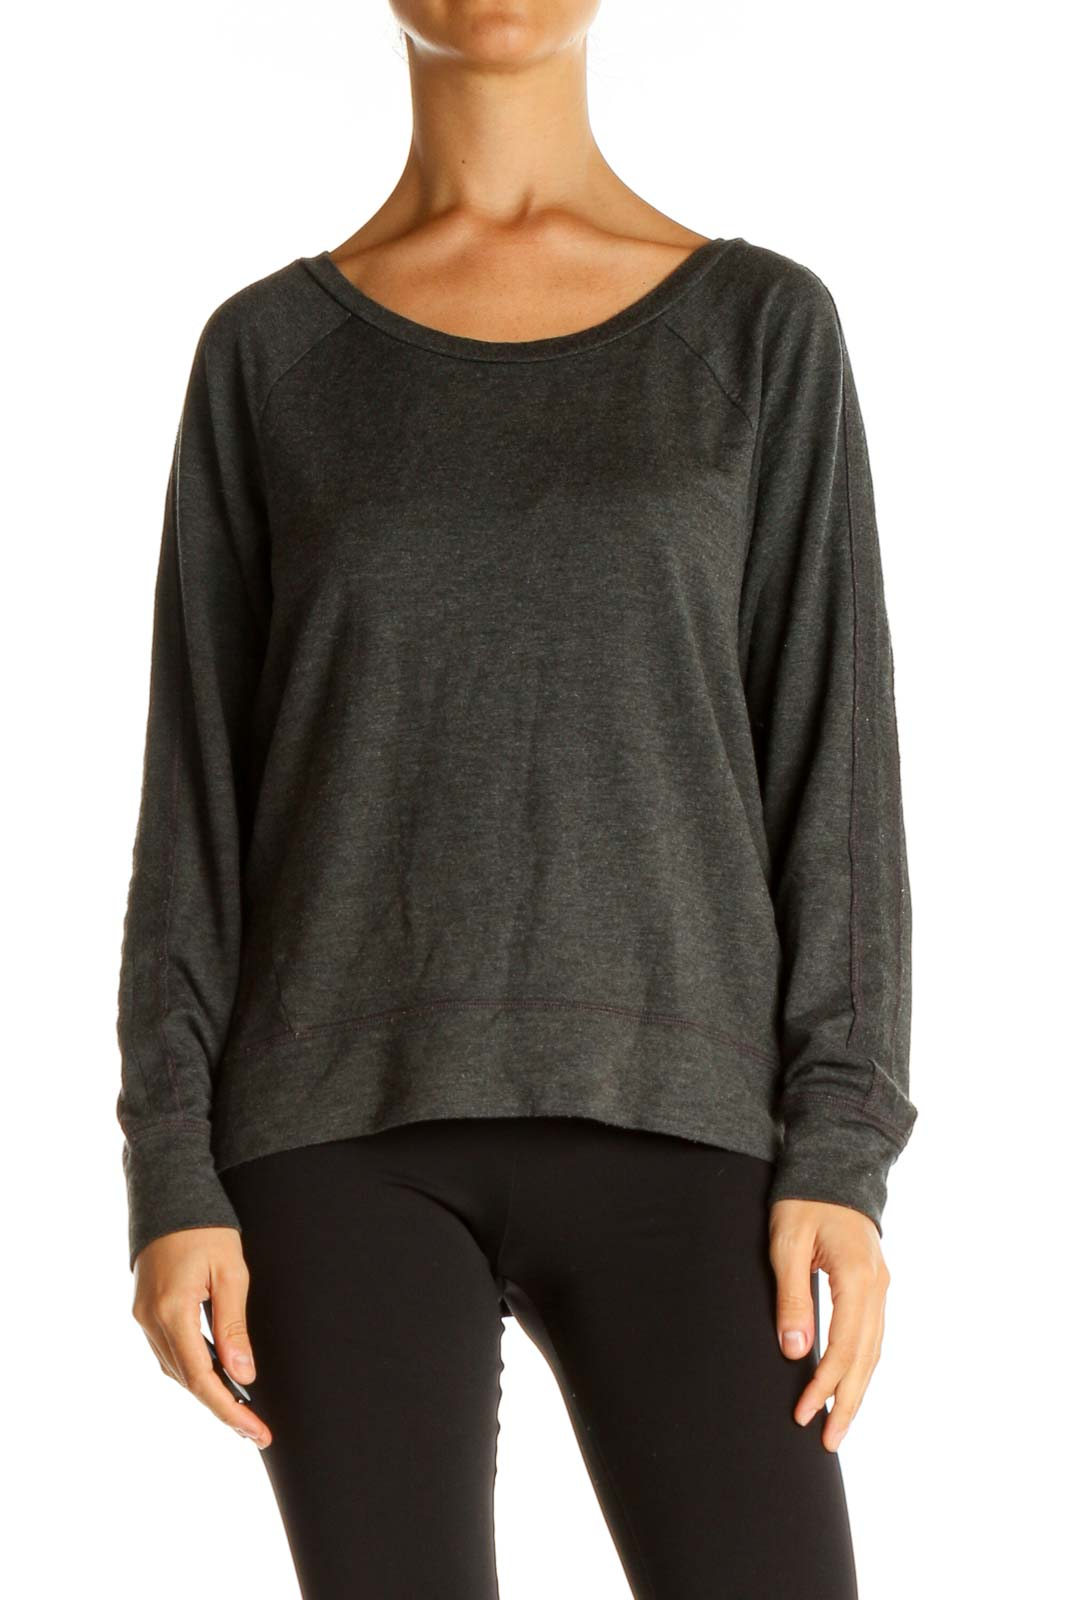 Gray Solid Casual Sweater Front